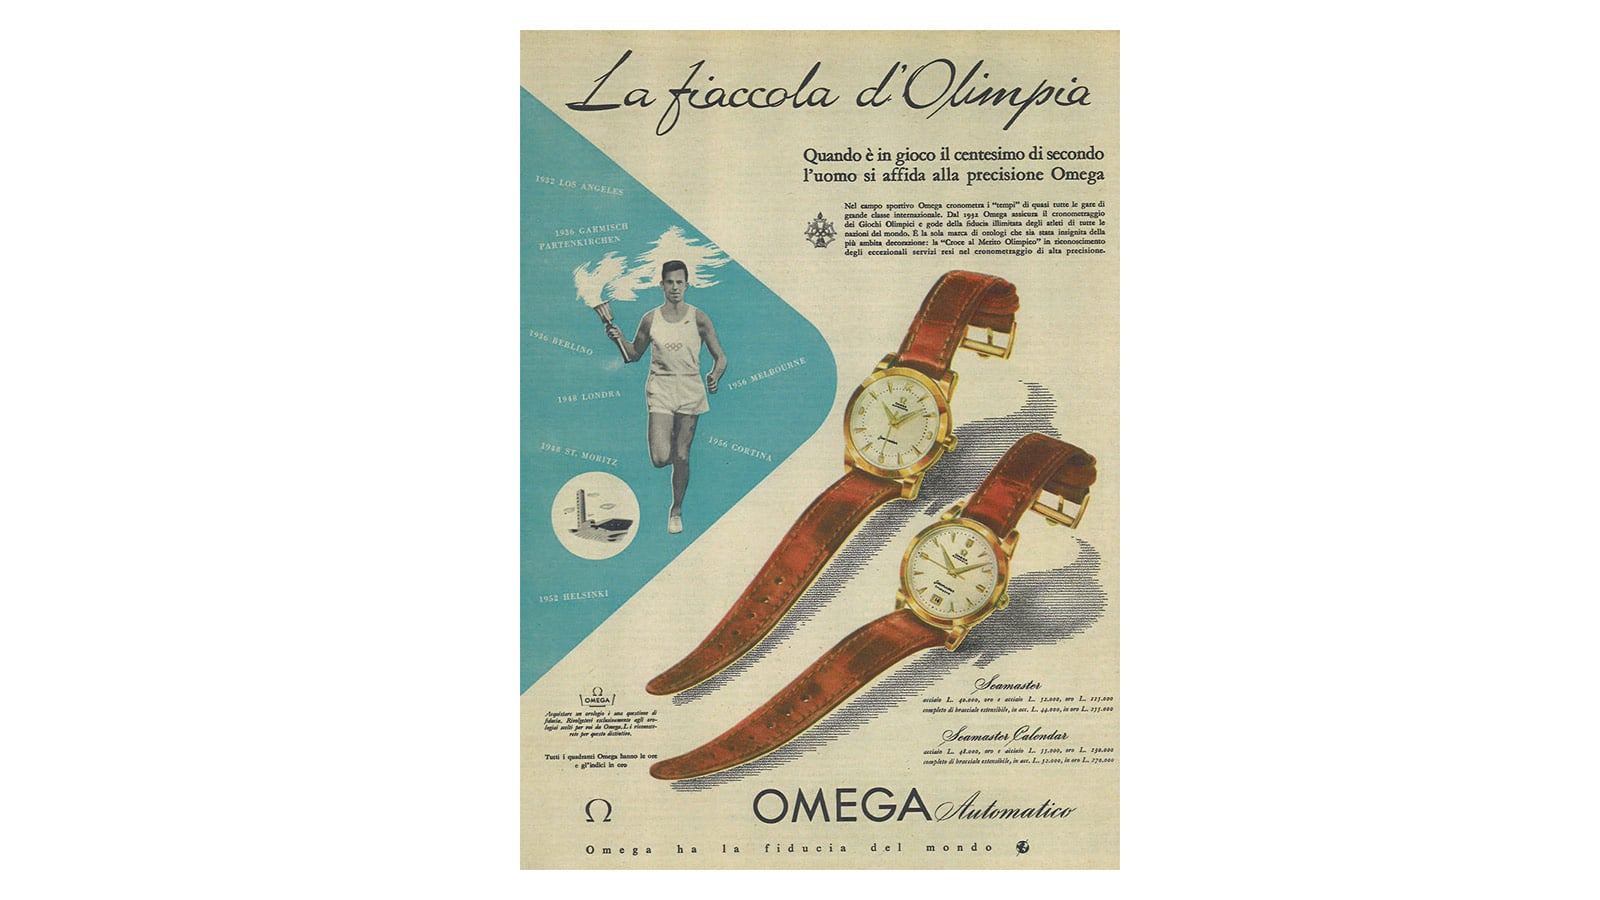 Olympic Games : a race proudly won by OMEGA - Slide 5 - 411